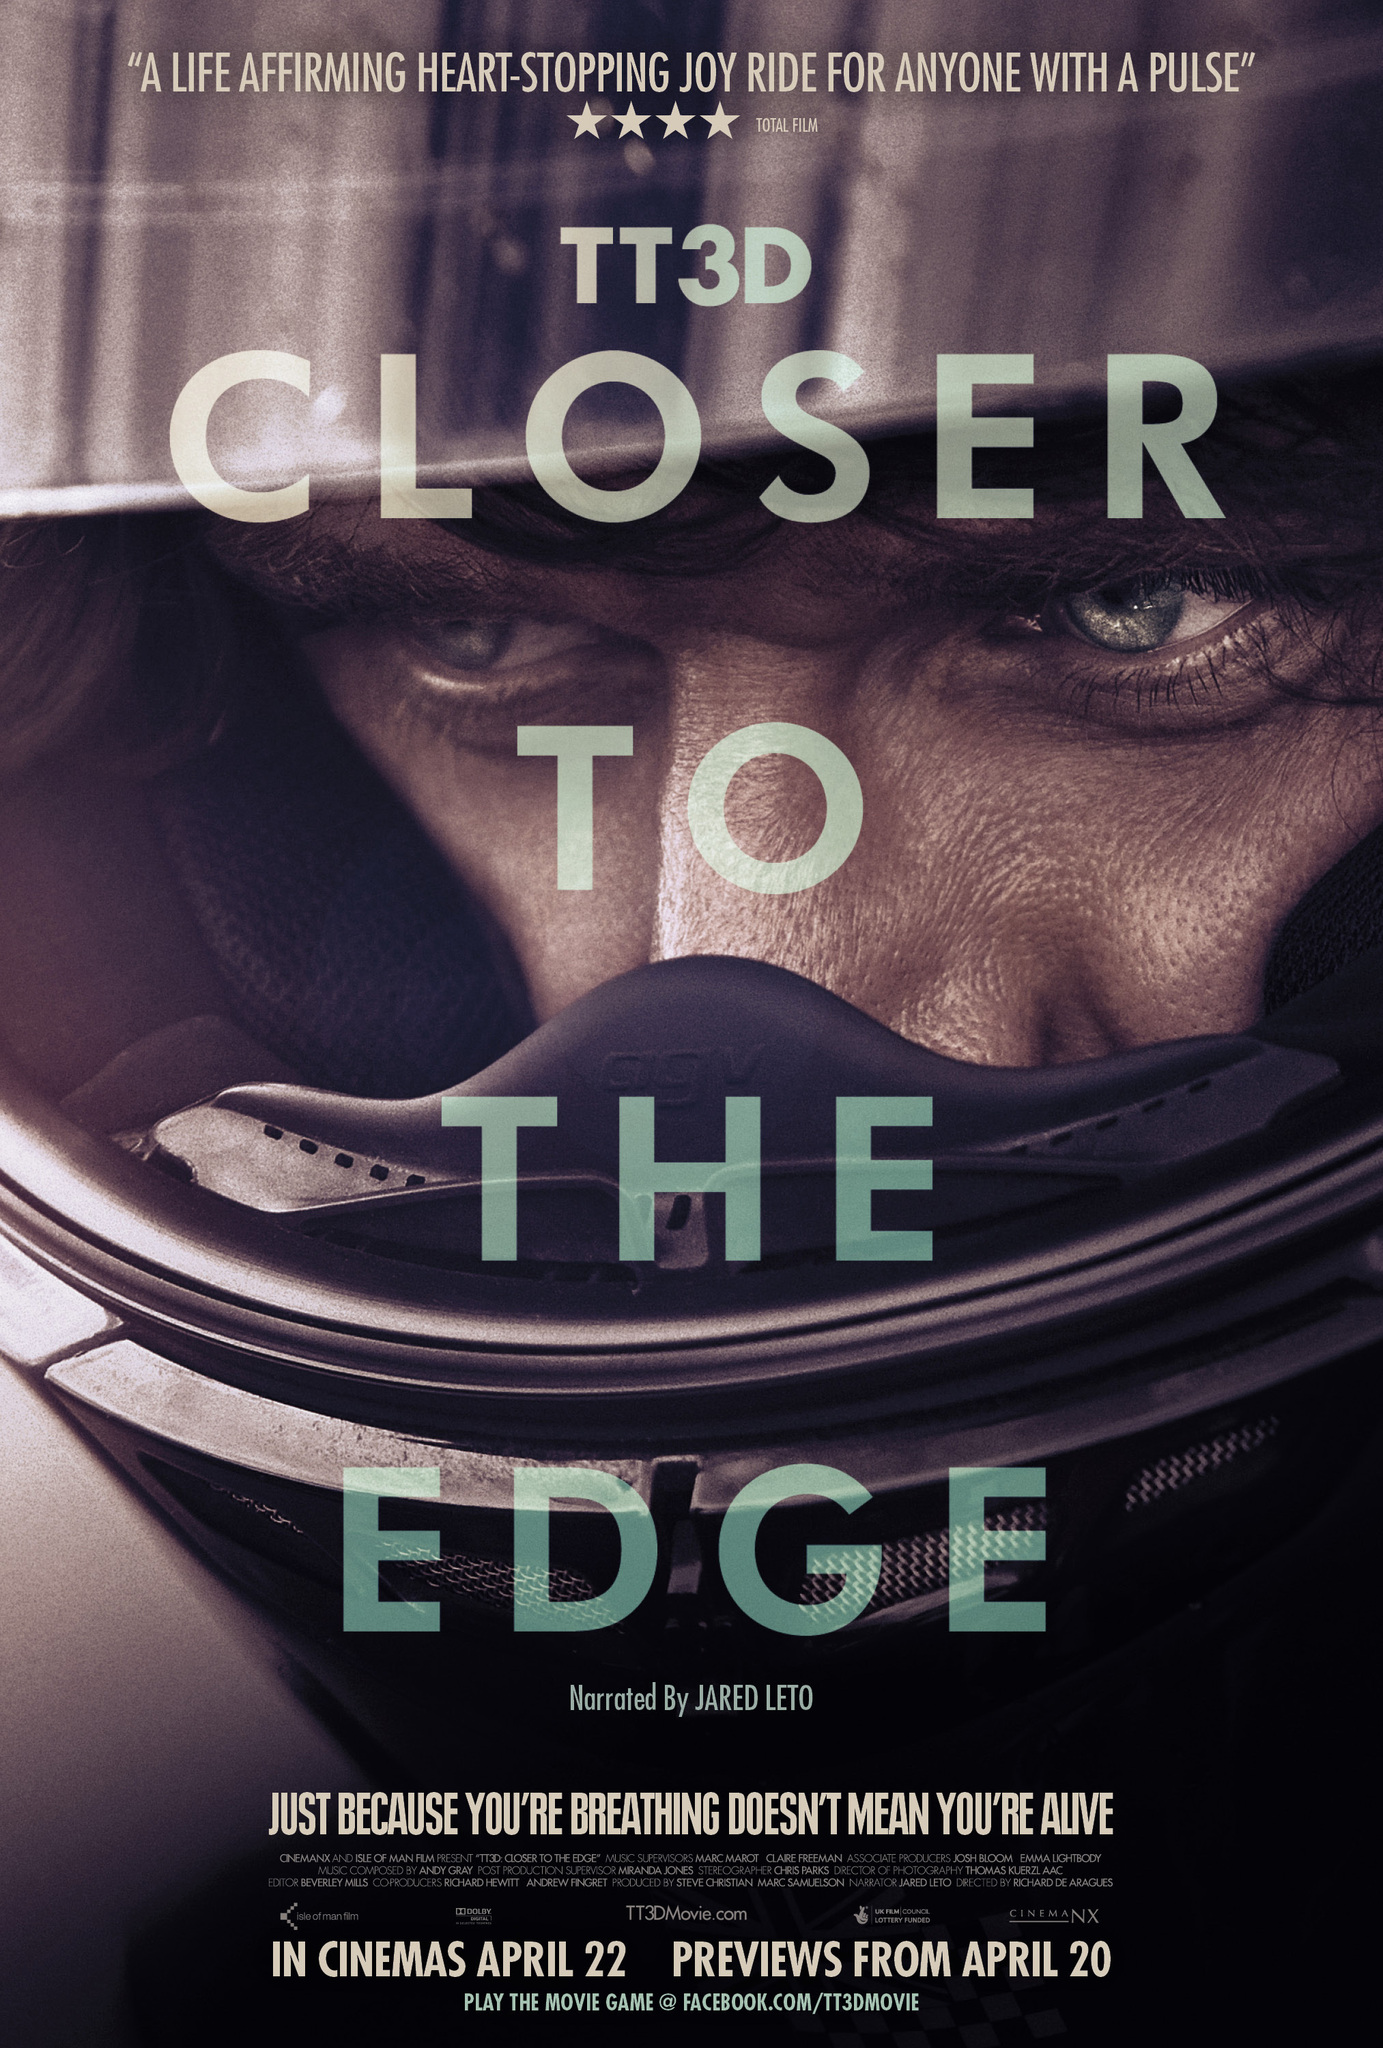 tt3d closer to the edge trailer